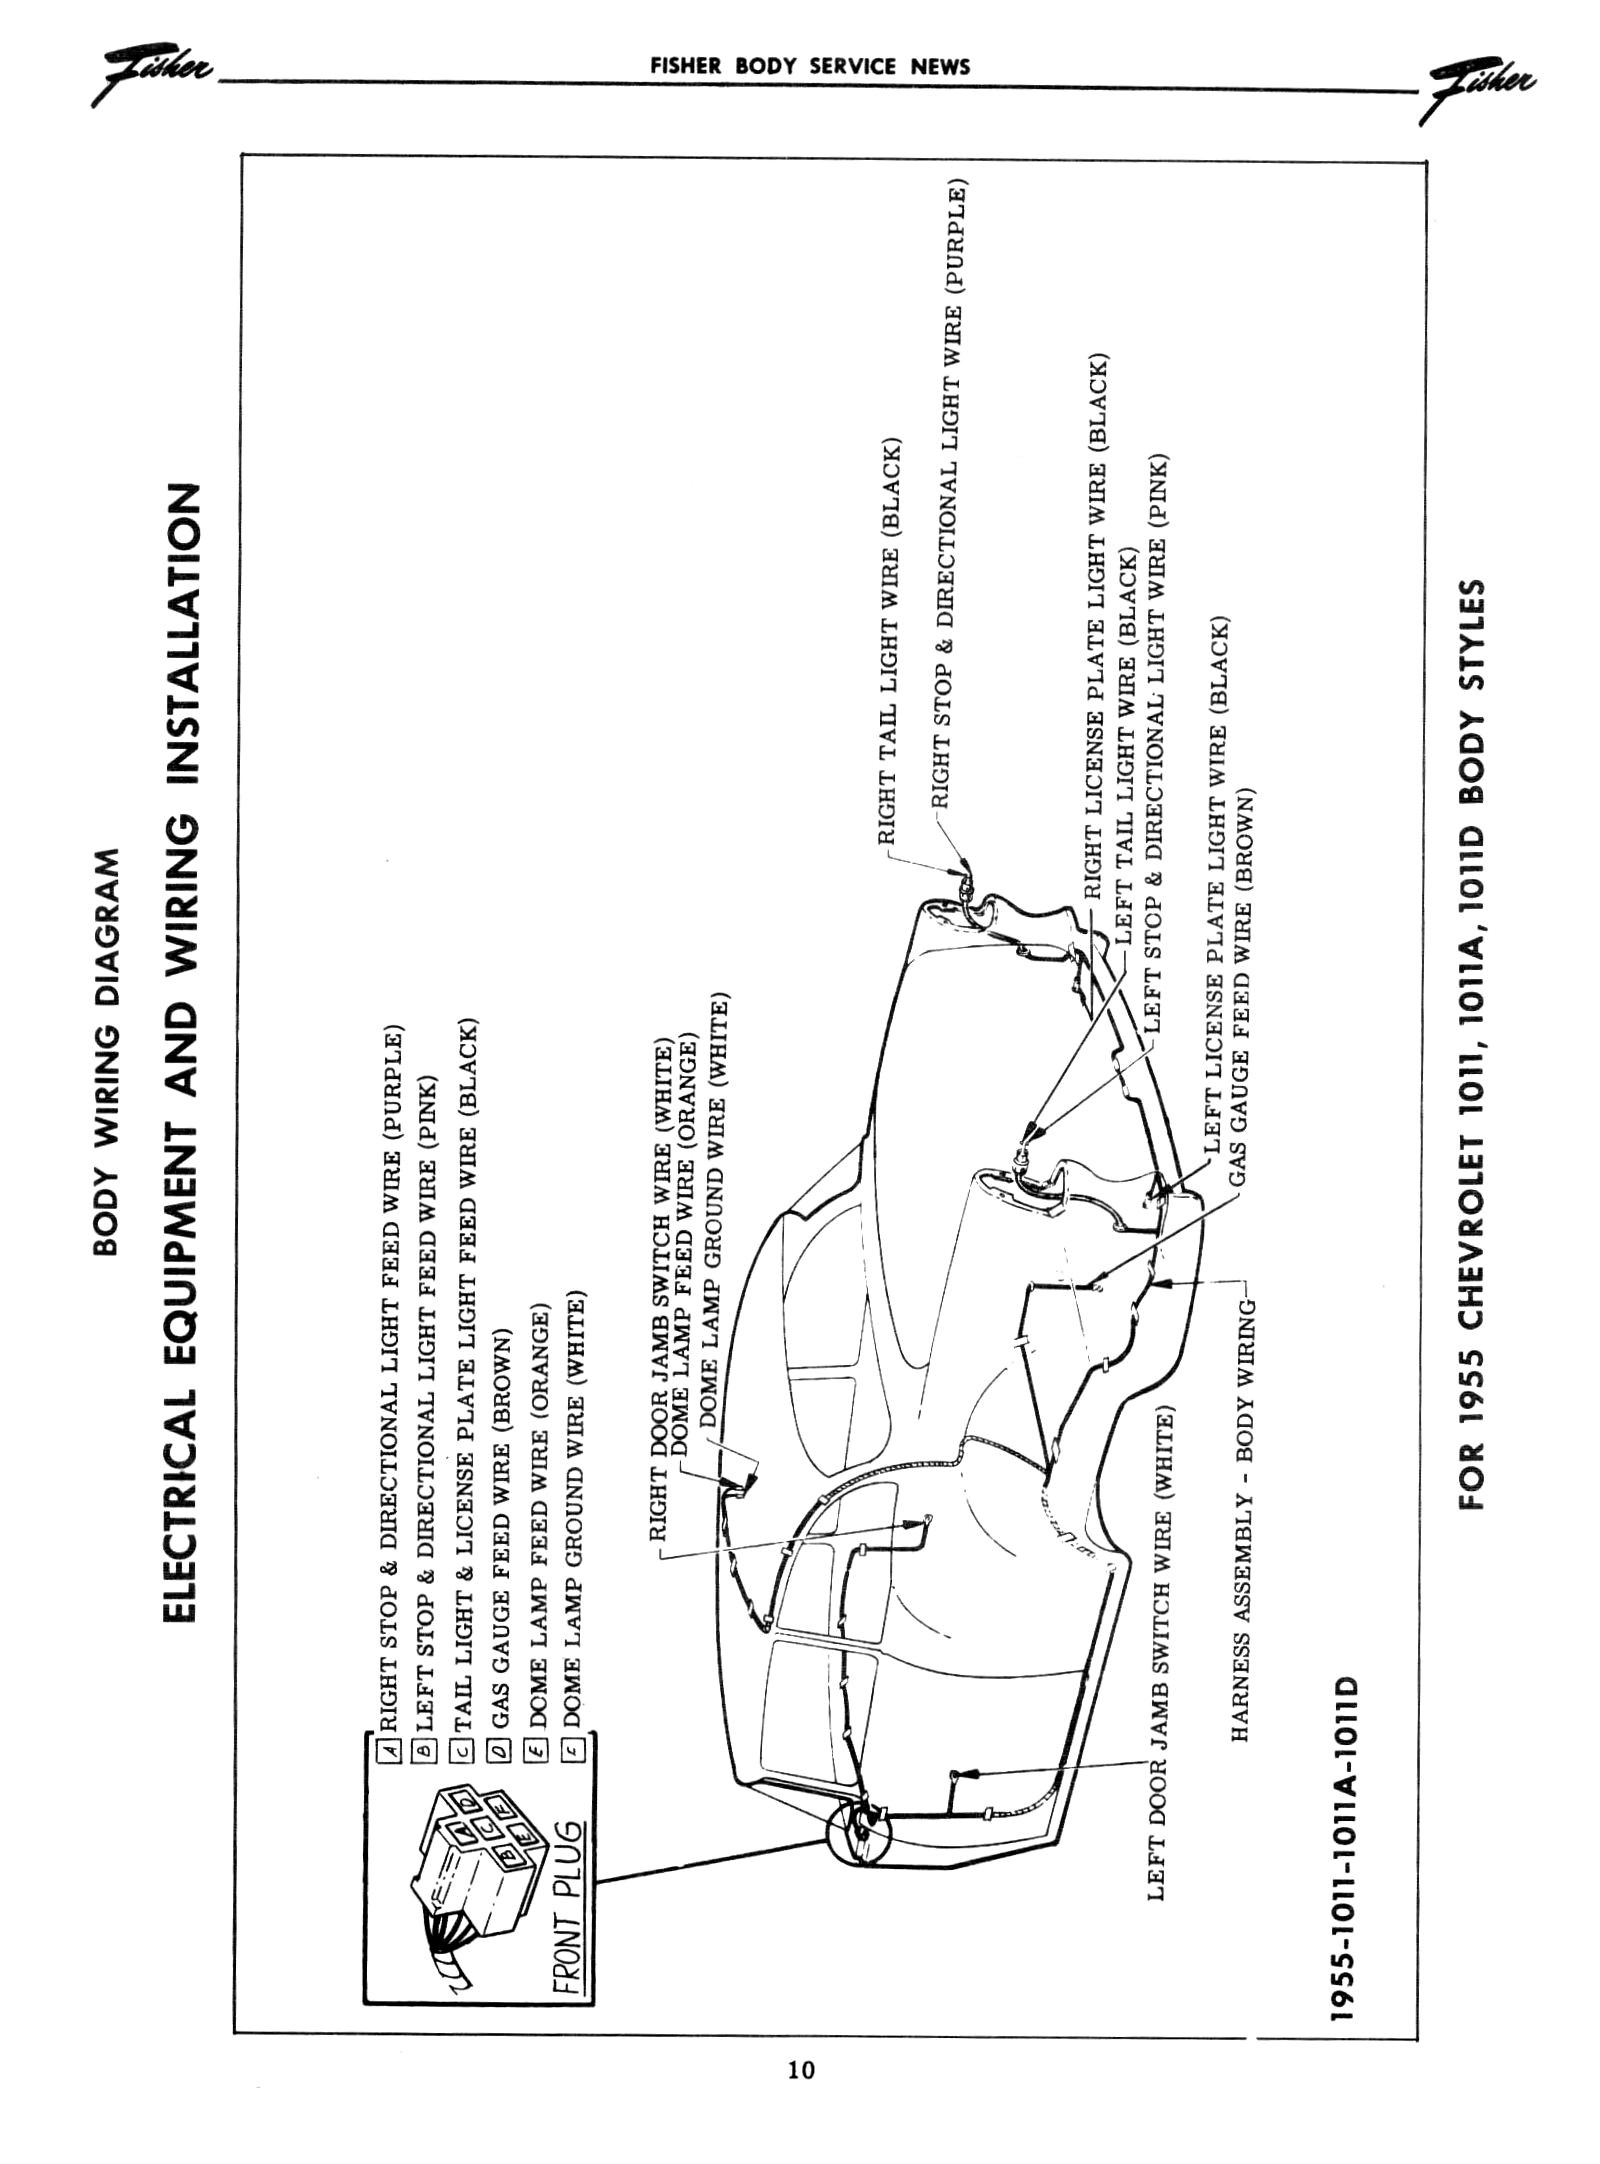 chevrolet chevy 1955 car wiring electrical diagram manual